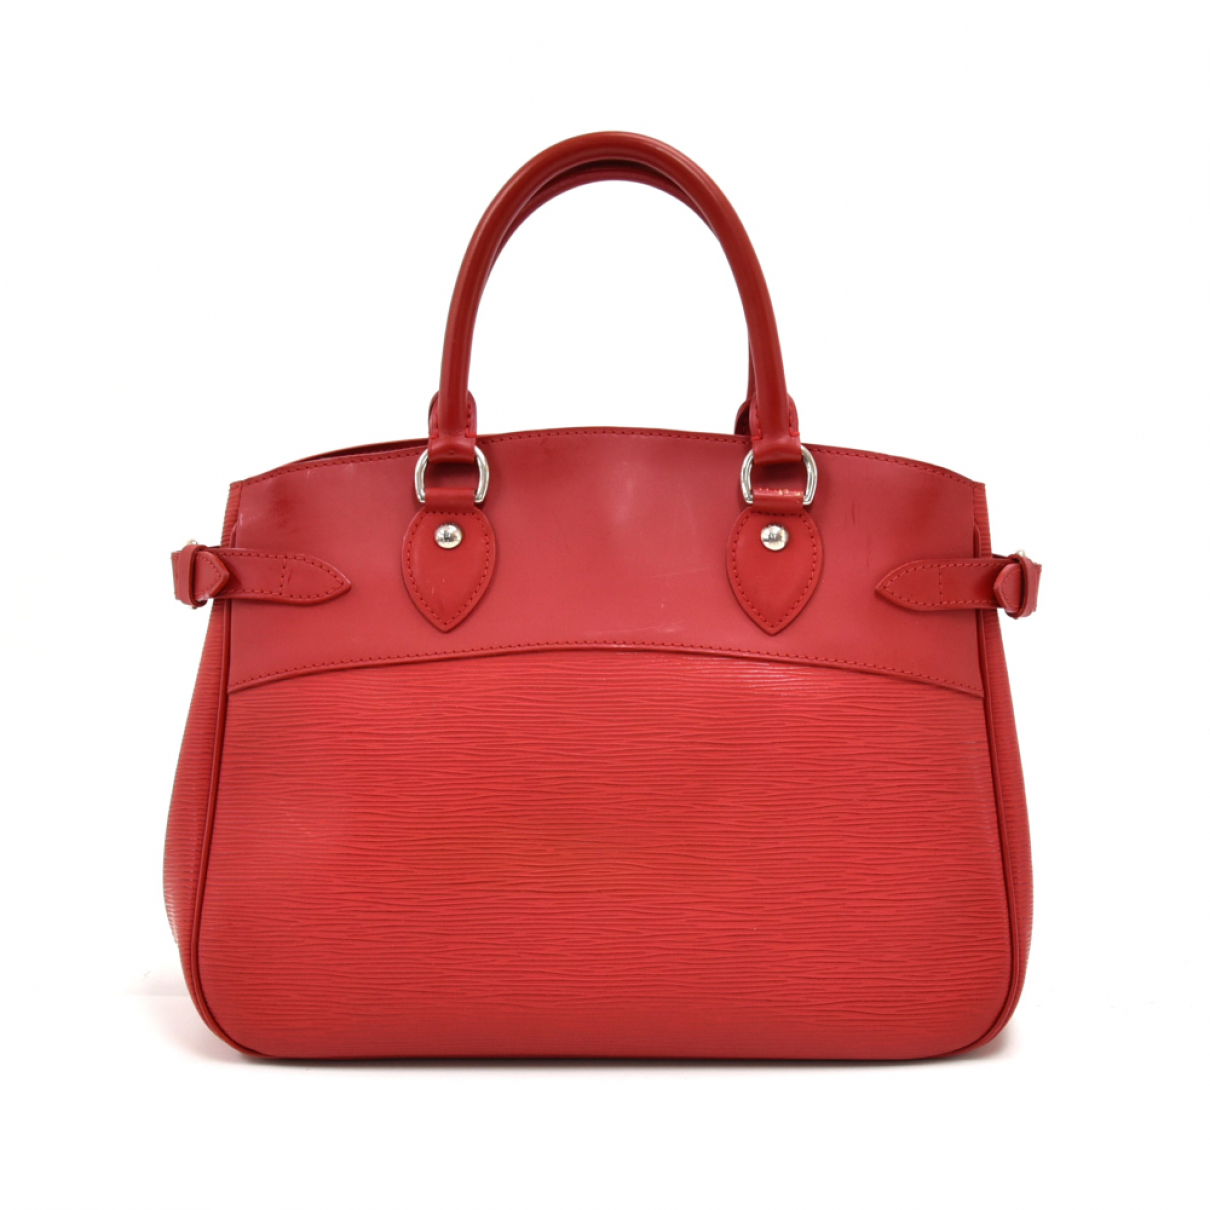 Louis Vuitton Passy Red Leather handbag for Women N